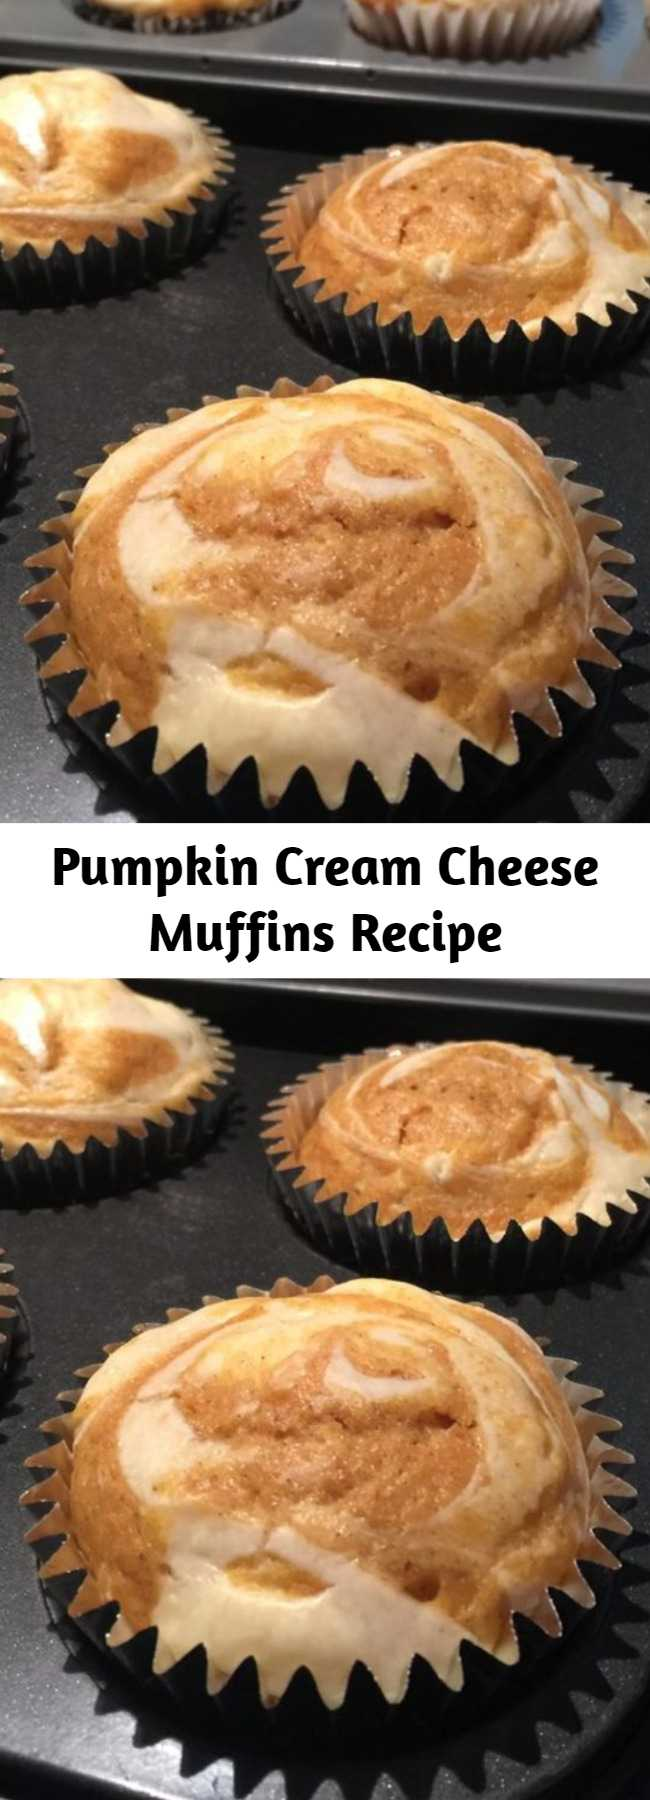 Pumpkin Cream Cheese Muffins Recipe - These muffins are the best! They are moist and very delicious. Not only taste great but looking so good as well! You'll be glad you made this recipe for pumpkin muffins with a cream cheese filling and a streusel topping. #breakfastrecipes #brunchrecipes #breakfastideas #brunchideas #muffins #muffinrecipes #baking #bakingrecipes